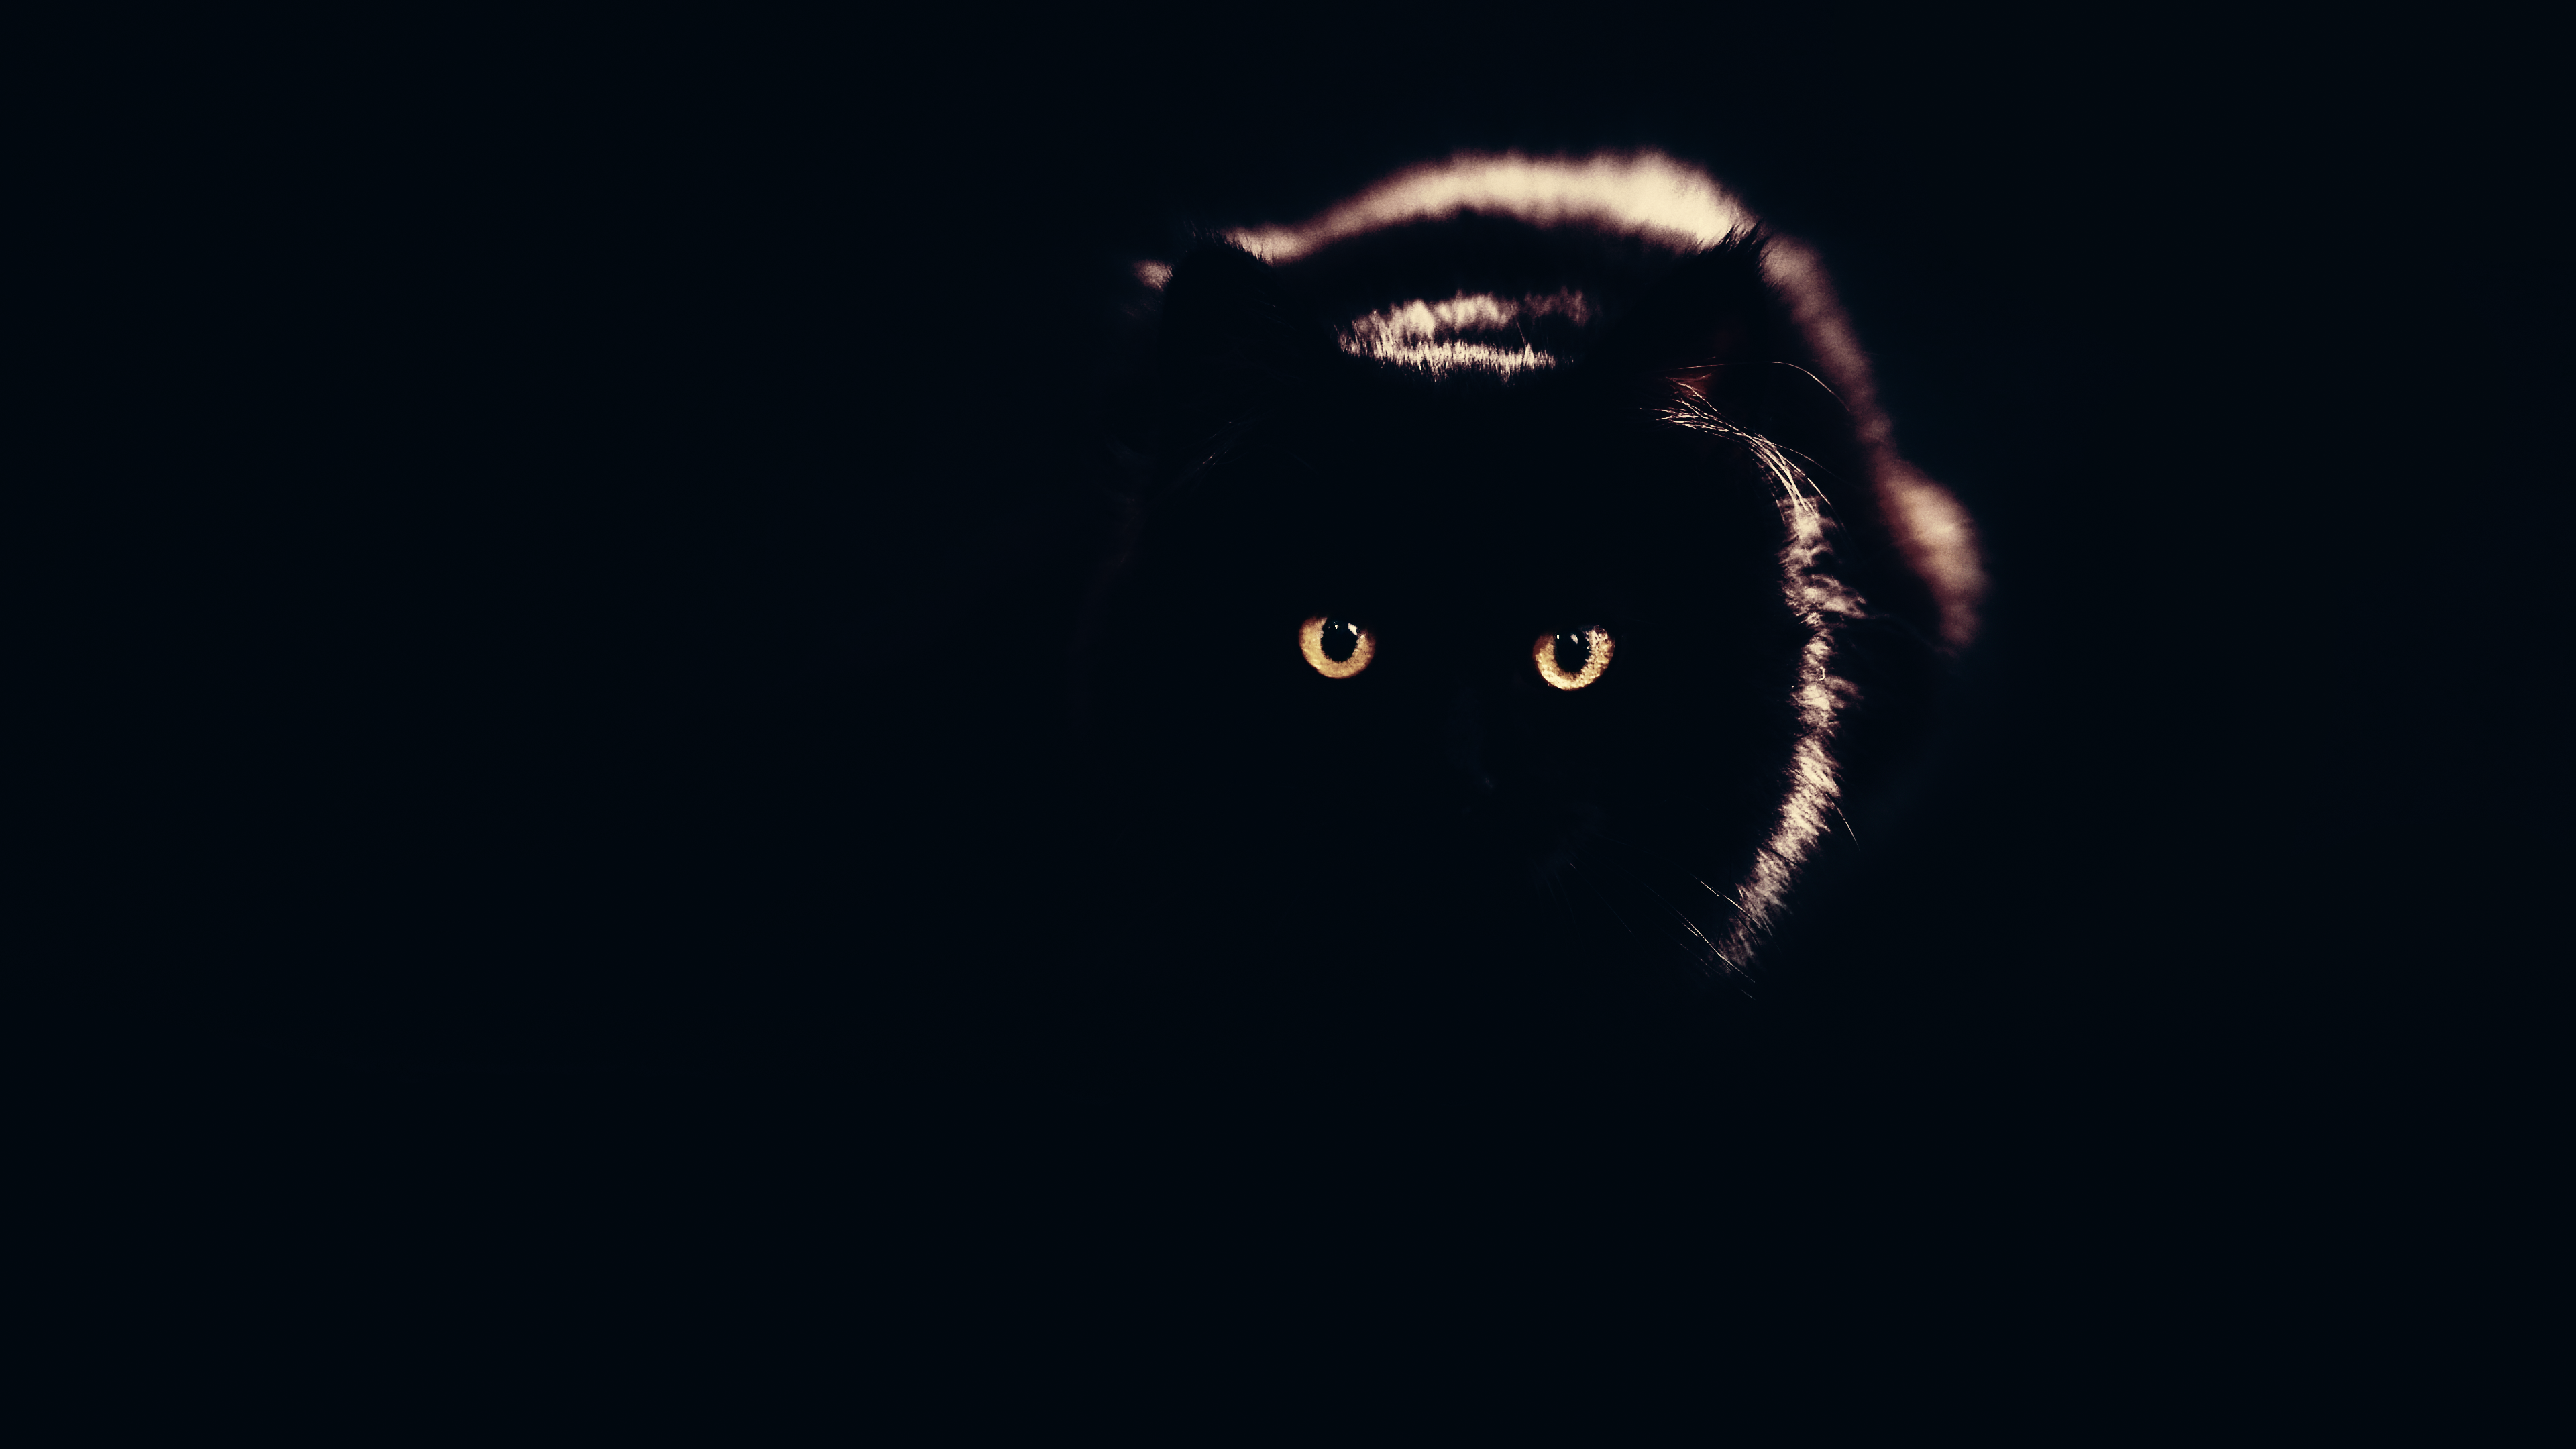 4k Wallpaper Wallpaper By Gstblack: Download Free HD Black Cat Desktop Wallpaper In 4K ...0046